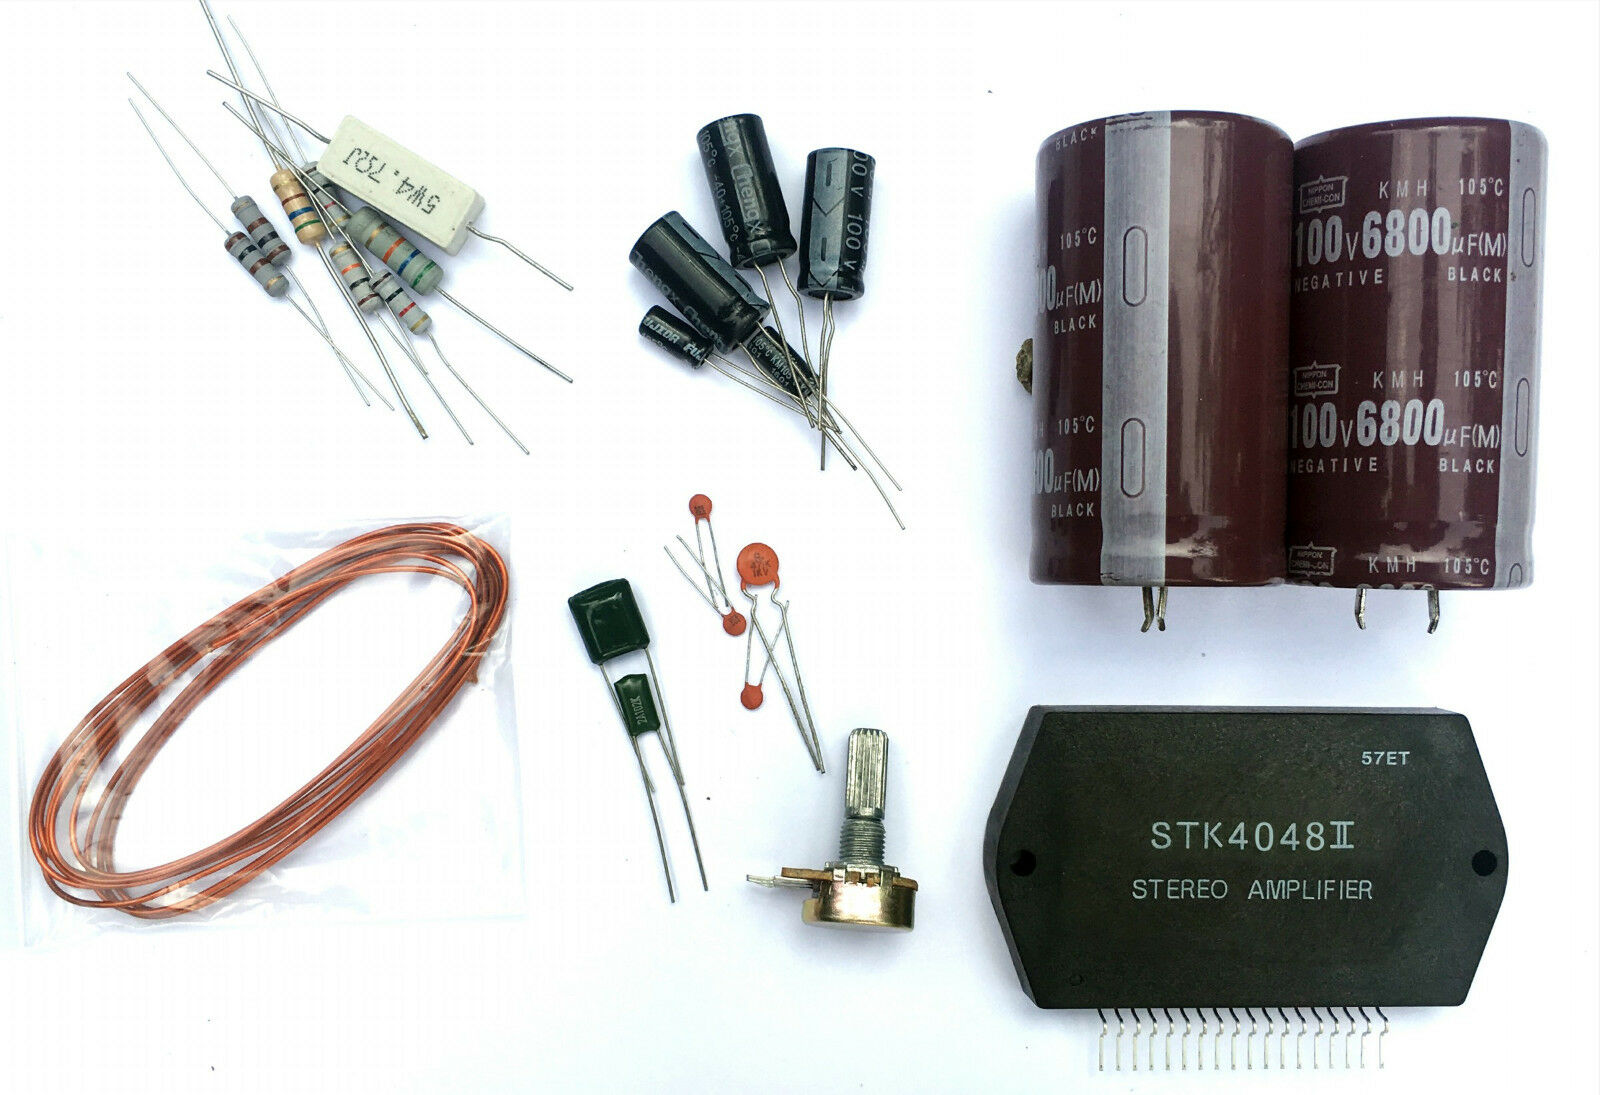 Stk 4048 150w Amplifier Mono 10 Pcb Ccl Anti Etching Circuit Board Ink Marker Pen For Diy Ebay Condition